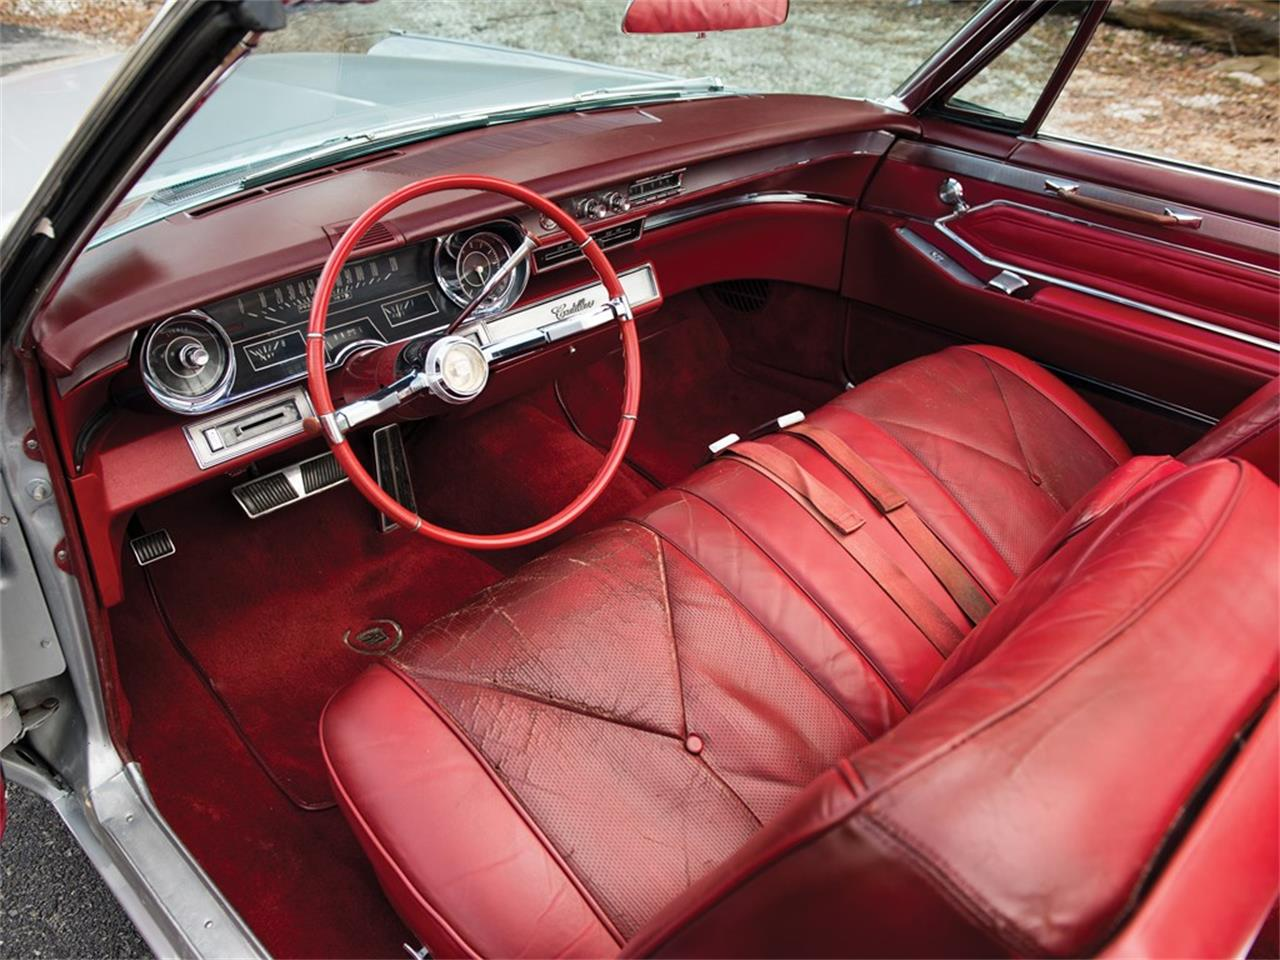 1965 Cadillac DeVille for sale in Fort Lauderdale, FL ...